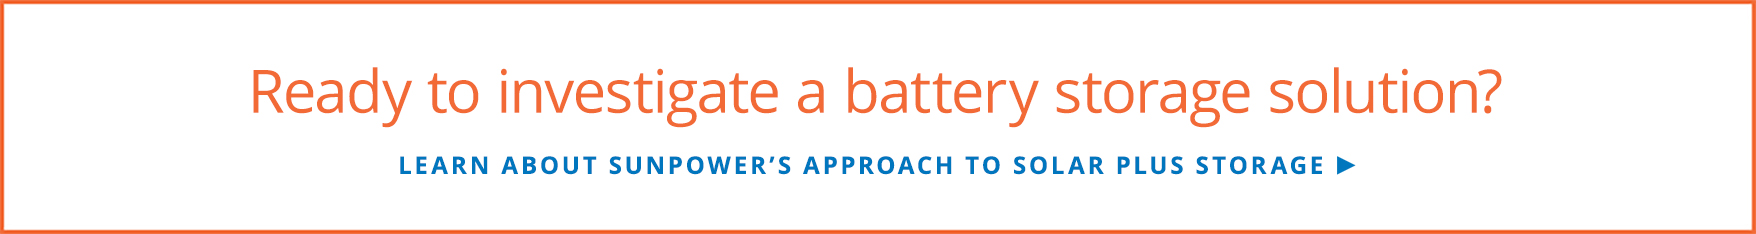 Learn about SunPower's approach to solar plus storage